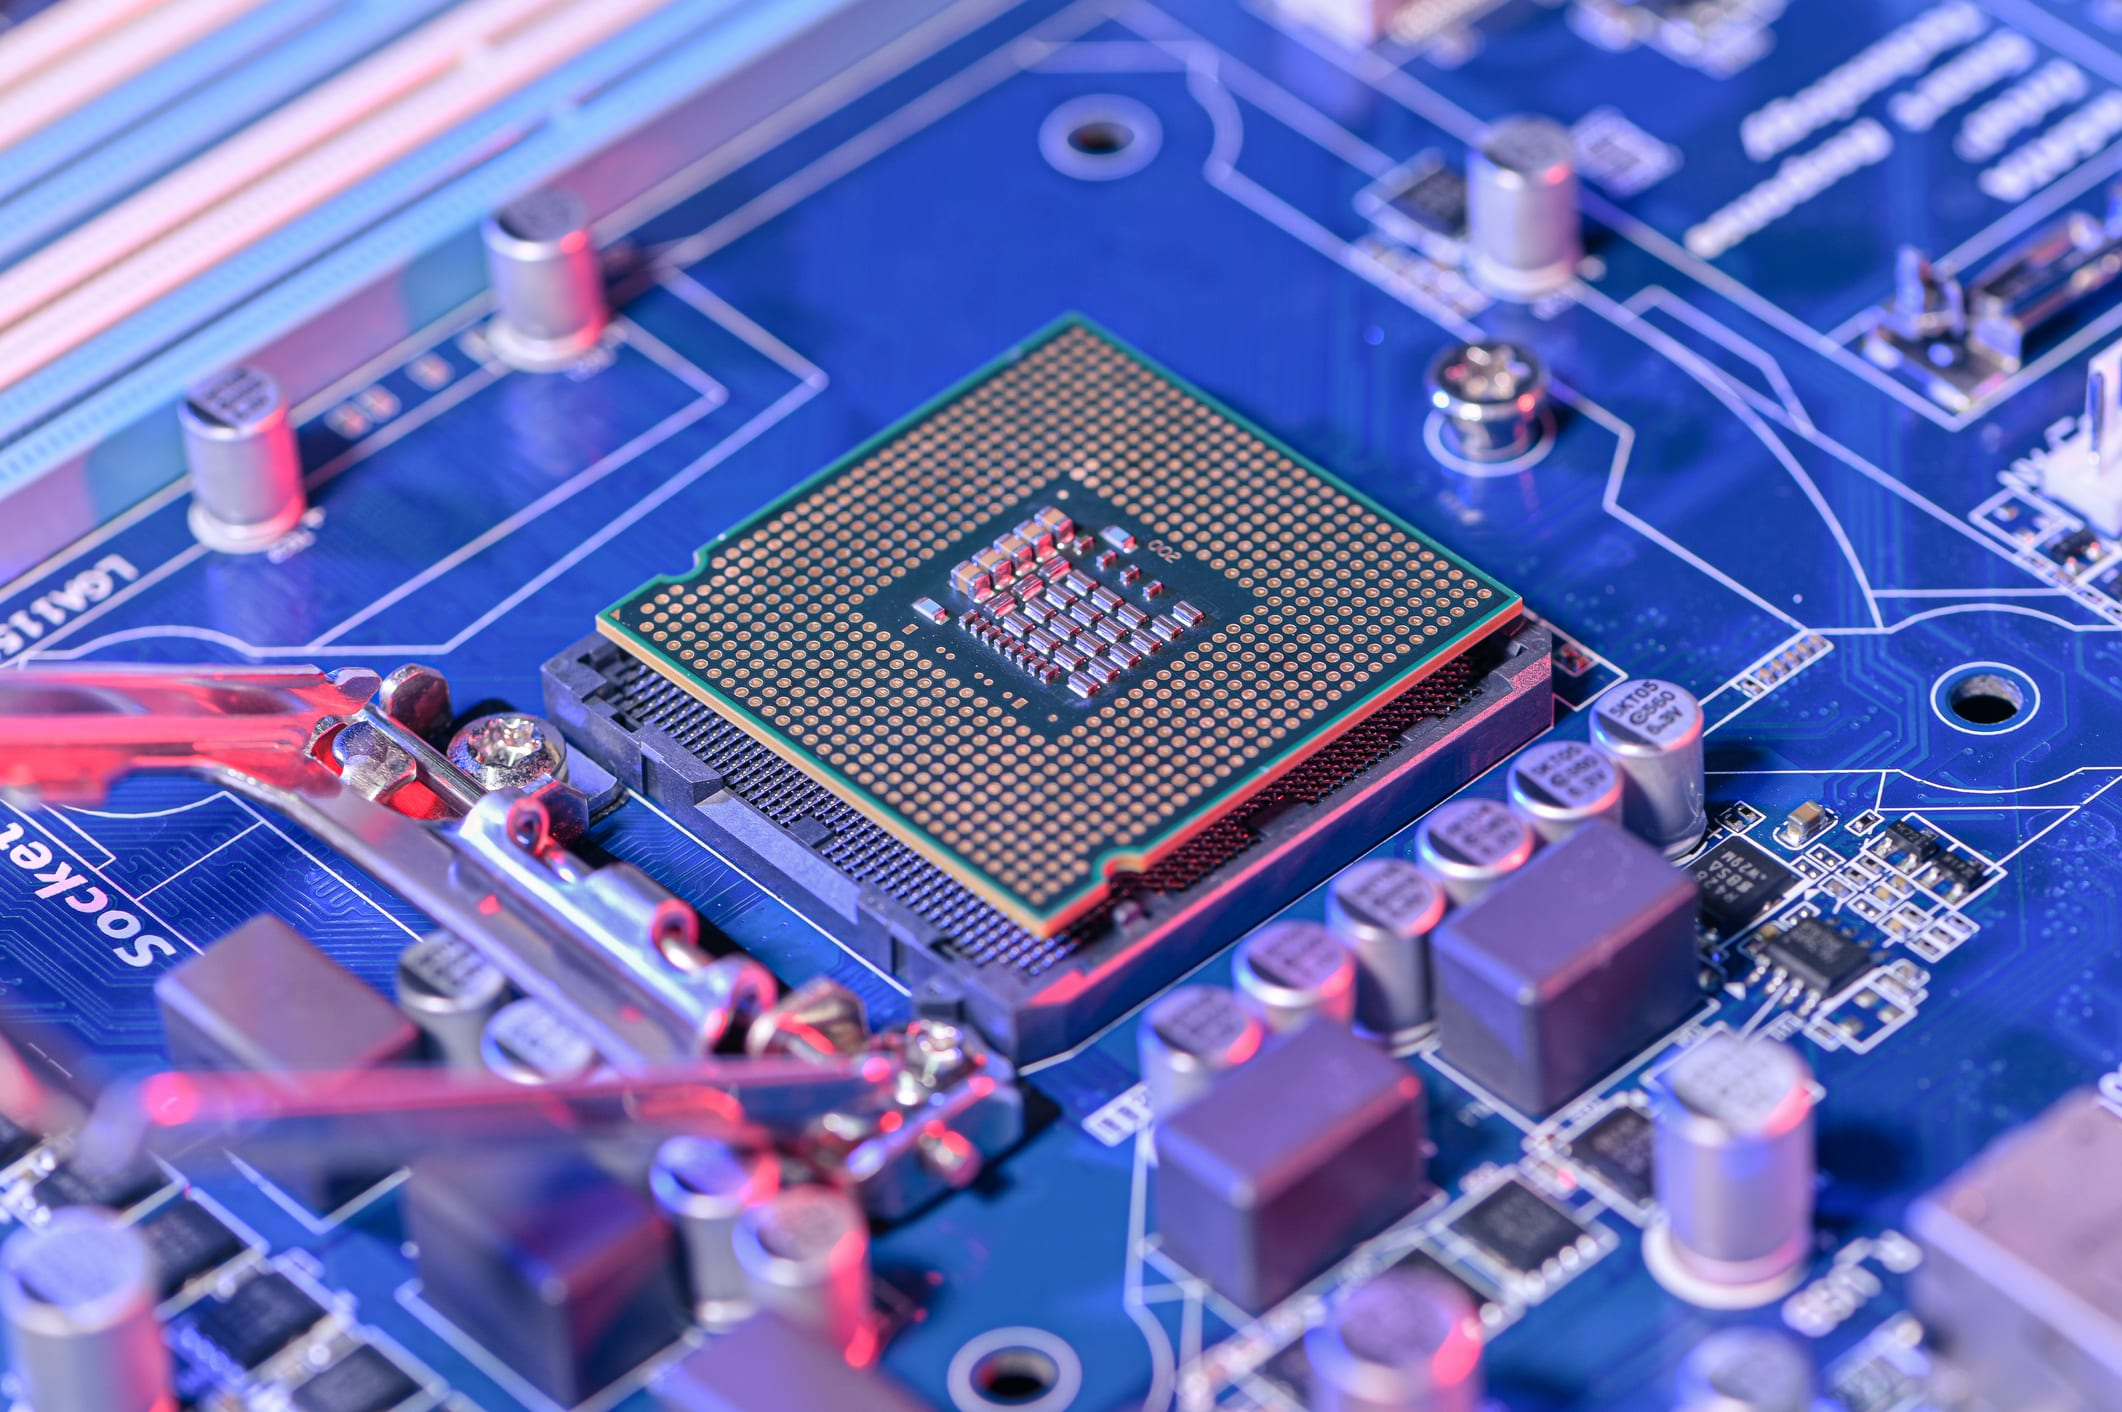 smic,-china's-largest-chipmaker,-plunges-23%-after-us.-says-it-could-blacklist-the-firm